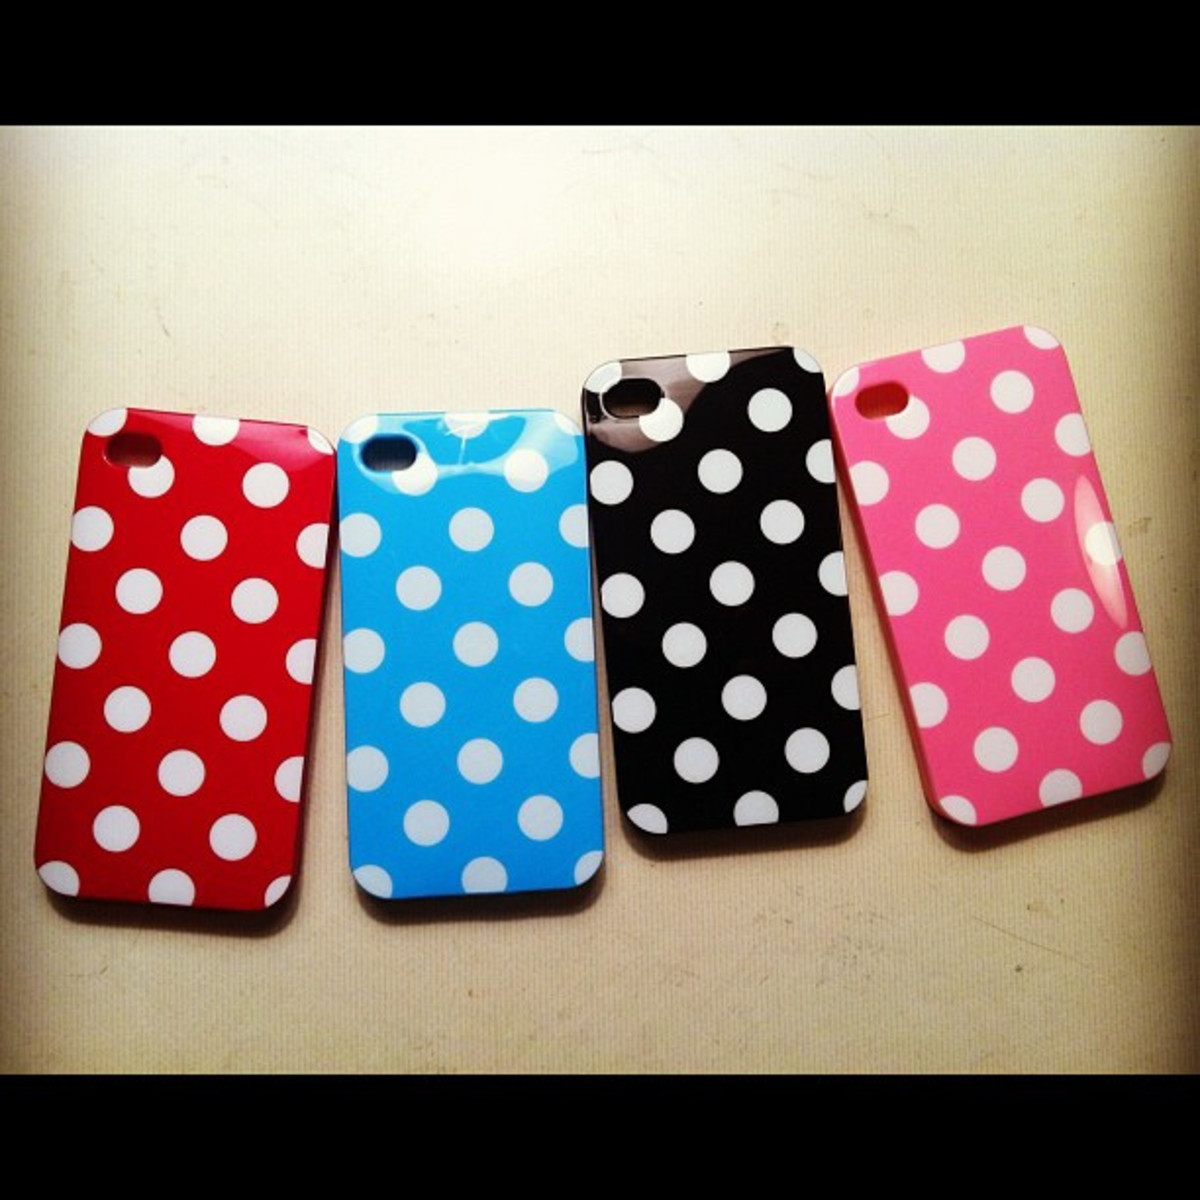 Cute cases for phones are always a hit!